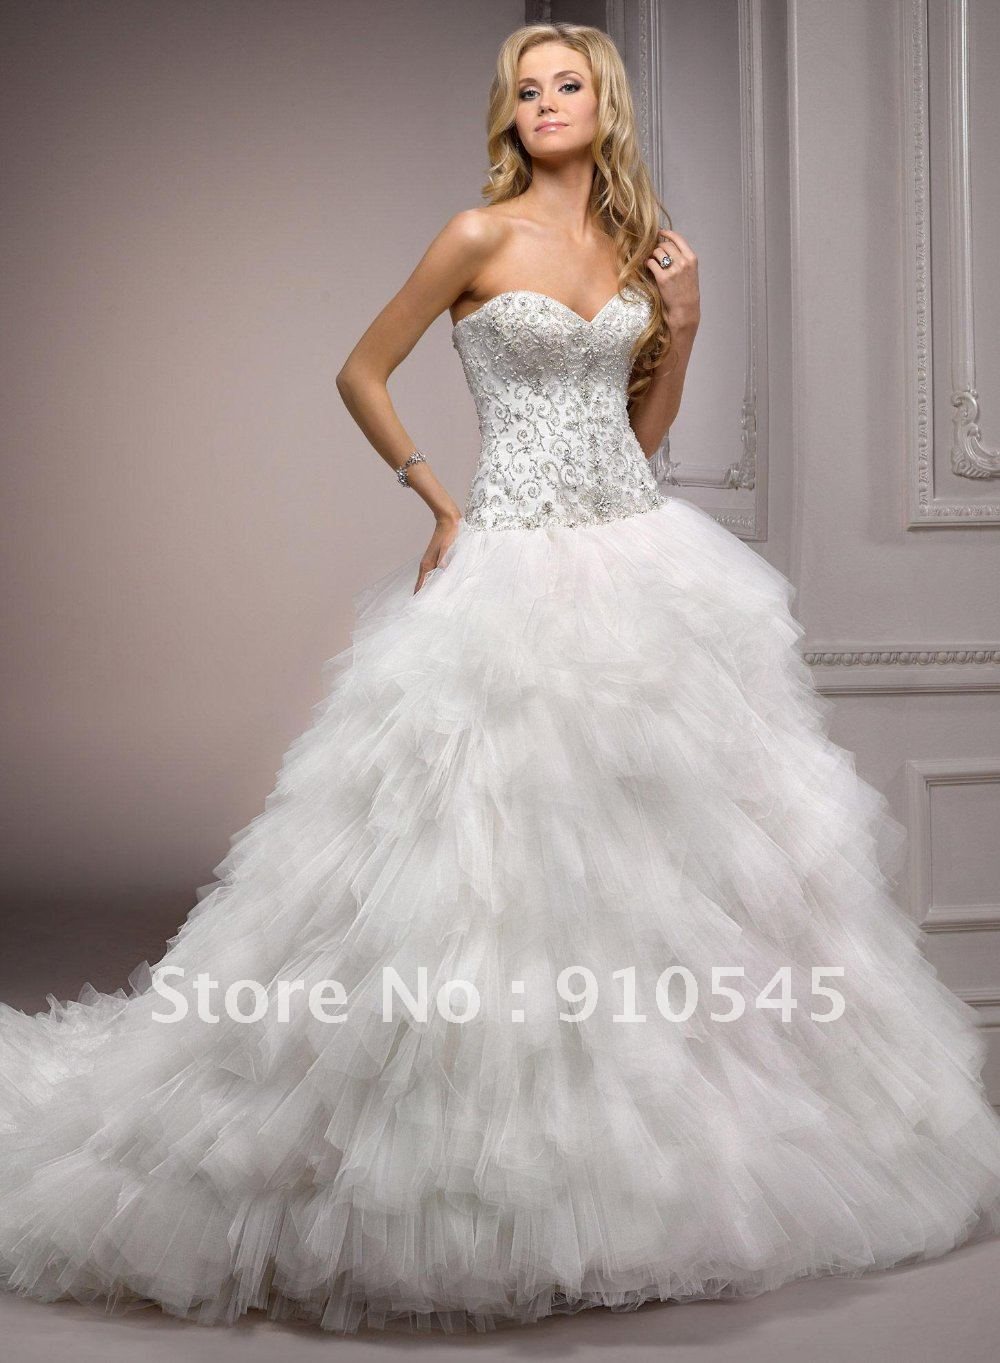 Online Shop Breathtaking ! Ball Gown in Tulle anf Organza ...